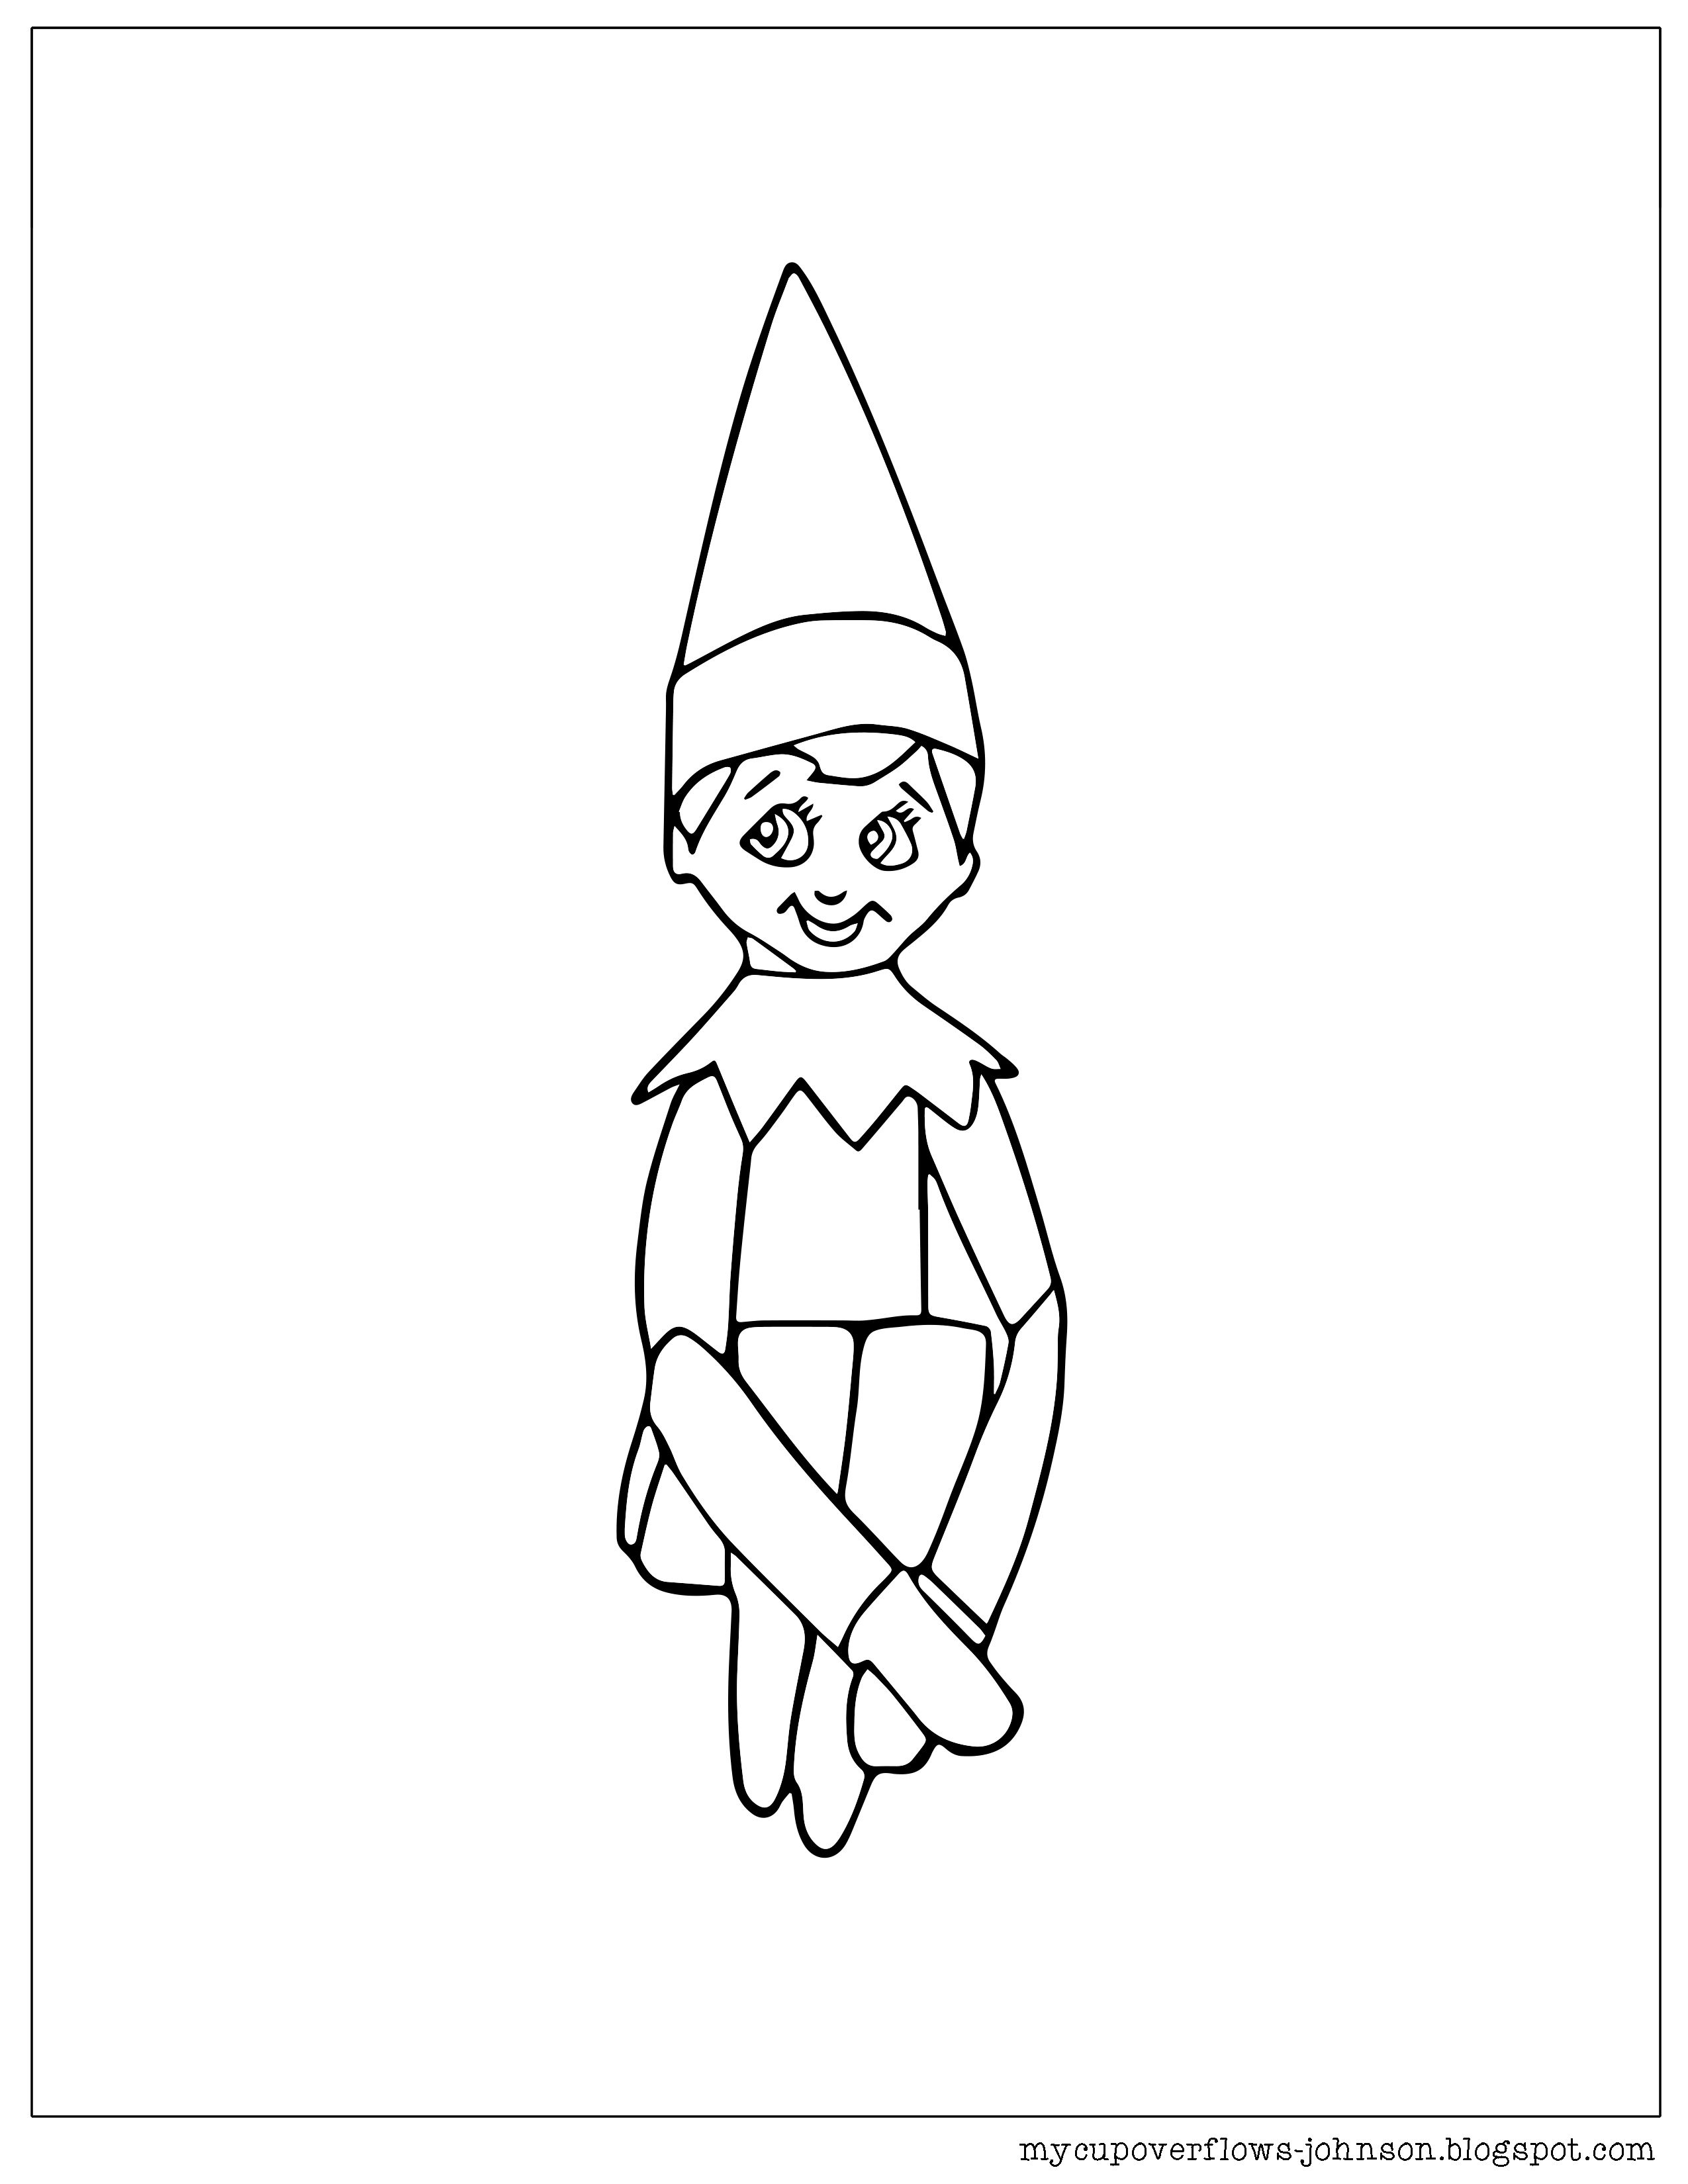 Elf On The Shelf Coloring Page Coloring Pages Bear Coloring Pages Dinosaur Coloring Pages